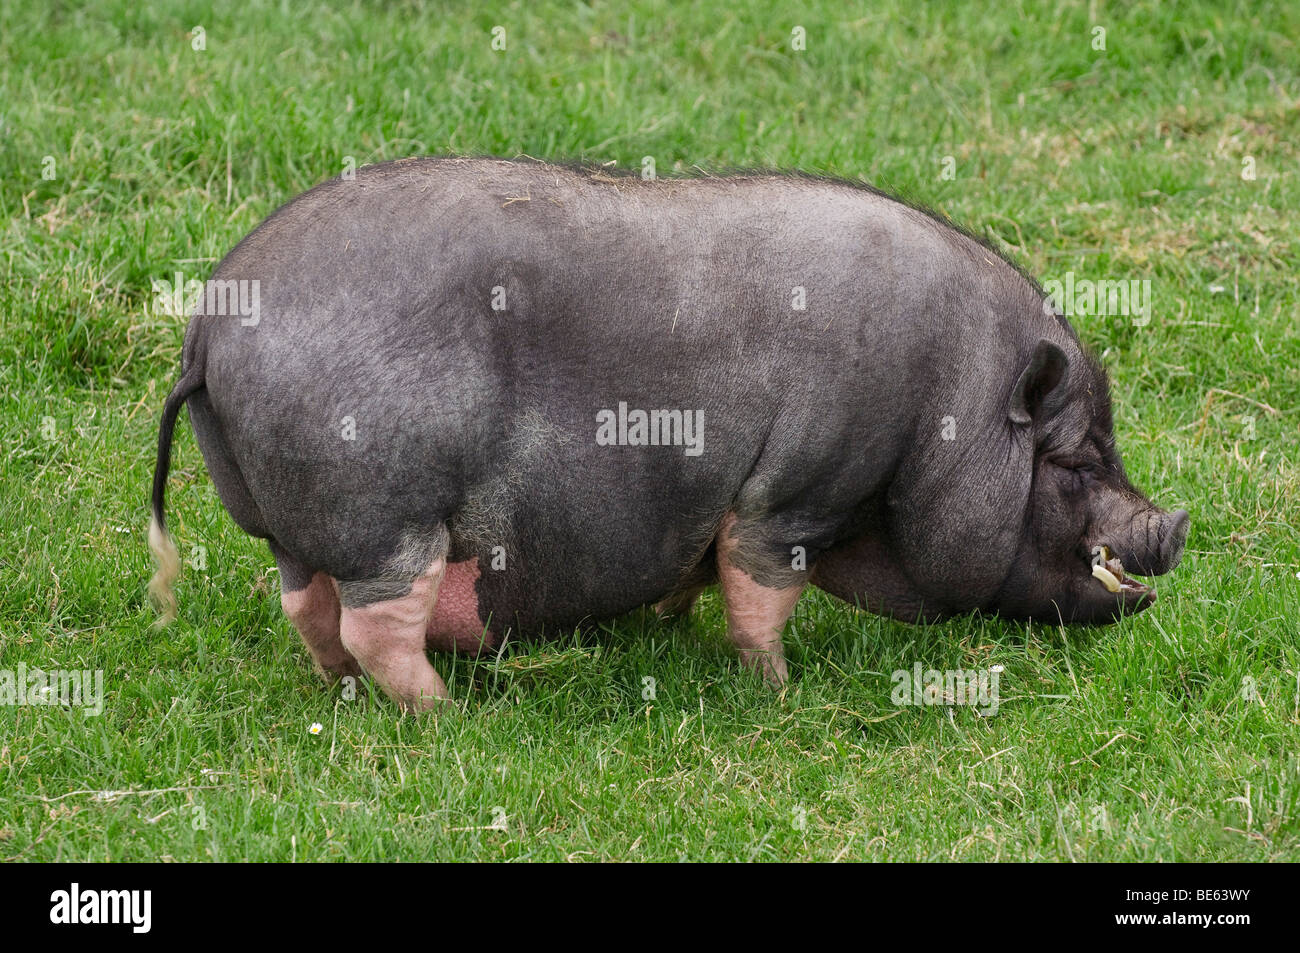 Pot-bellied pig (Sus scrofa f. domestica), boar on pasture - Stock Image